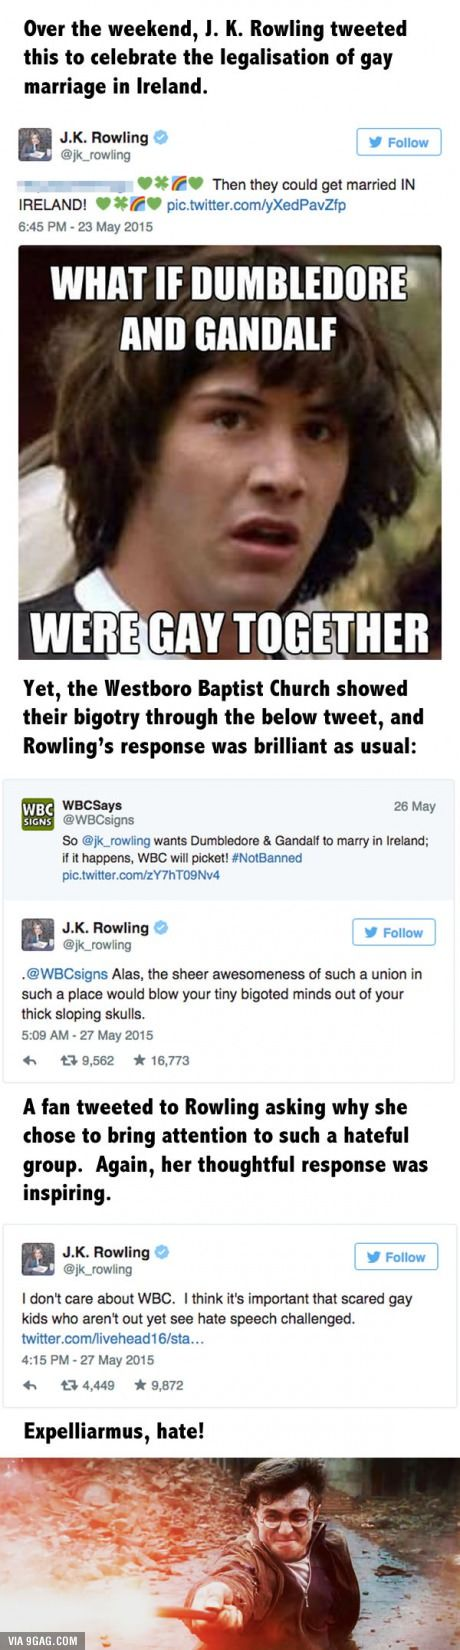 J.K. Rowling Tweet Slams The Westboro Baptist Church For Their Hateful Message. You da real MVP!